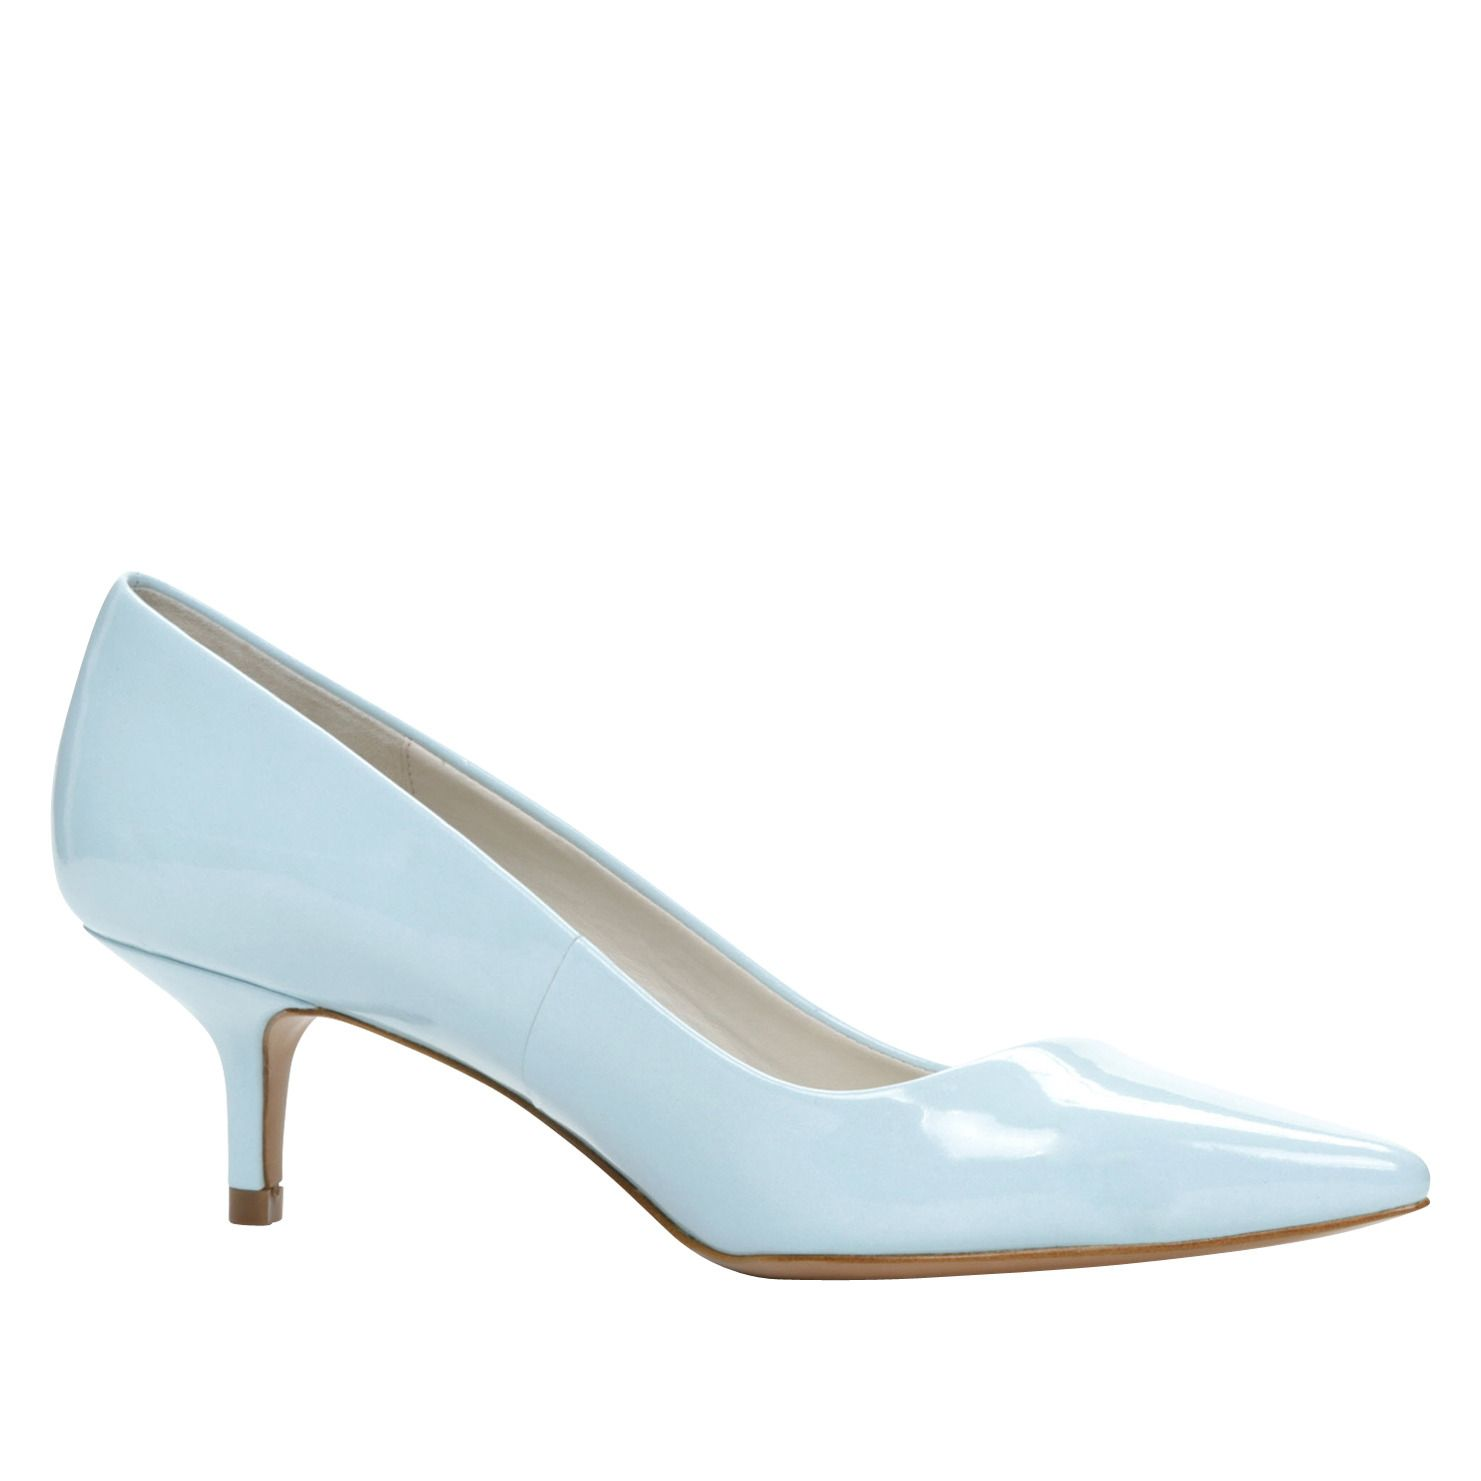 GRENAN - women s low-mid heels shoes for sale at ALDO Shoes. Love this  color for a shoe. Just want the heel higher! 827d1cfce